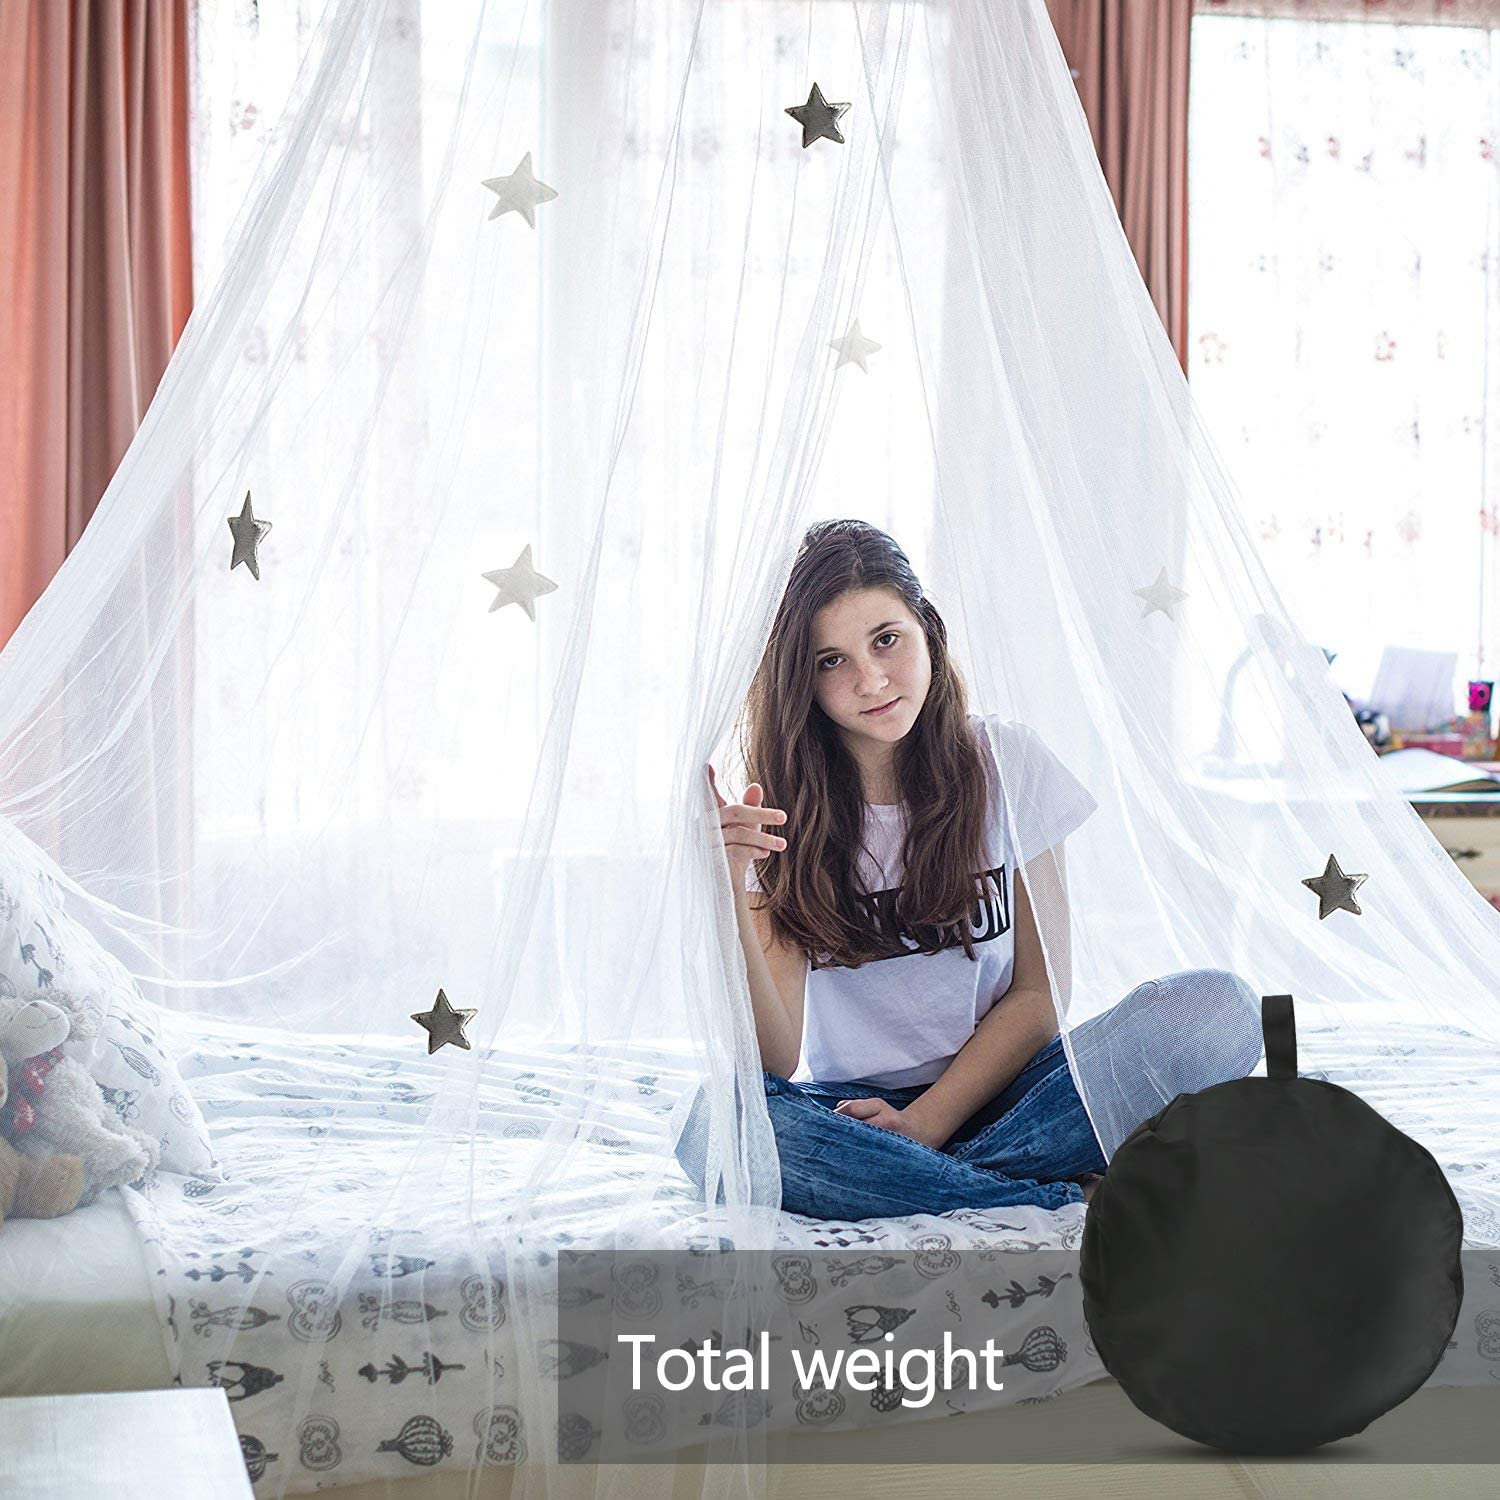 Mosquito Net Bed Insect Net Bed Canopy with Fine Mesh and Adhesive Hook Travel Bag 60 x 260 x 1100 cm Extra Large for Double and Single Bed AimTop Mosquito Net for Travel and Home